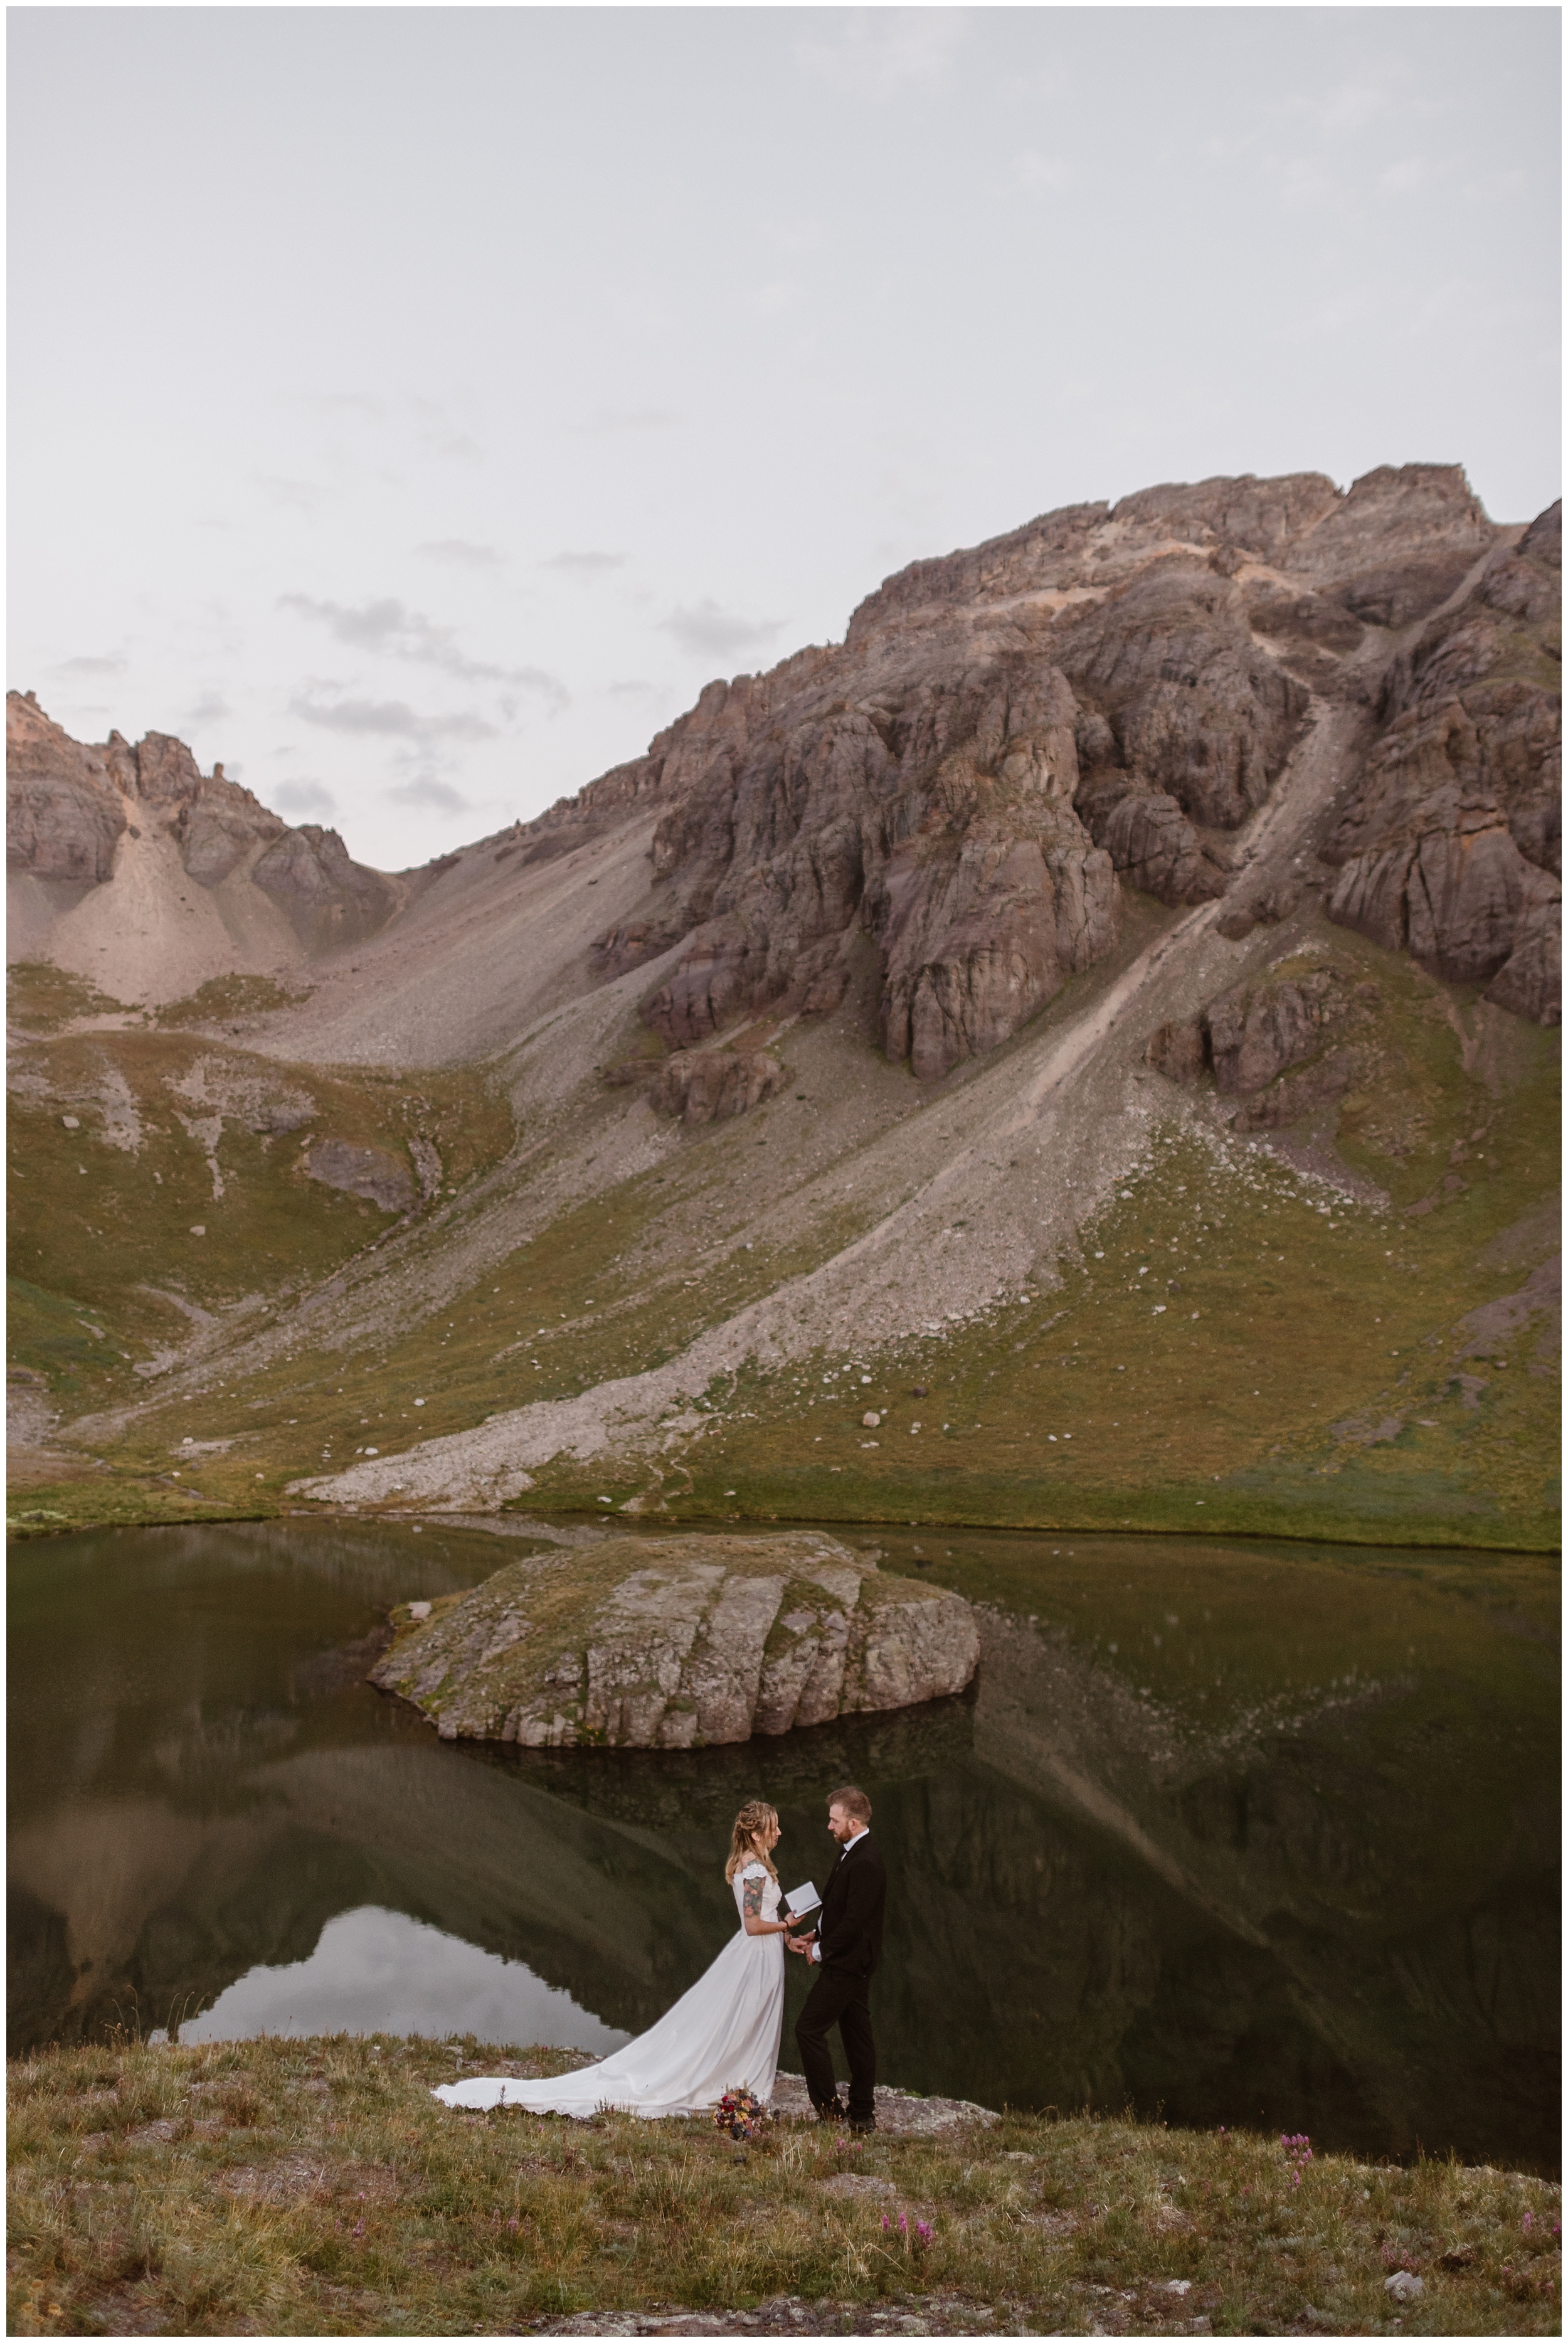 Brecka and Nick, the bride and groom, stand in front of an alpine lake as they read their vows to each other during their elopement ceremony. The two of them wanted an intimate adventure elopement in the Colorado mountains together. That's one of the benefits of eloping — you can have exactly the destinatino wedding you want!